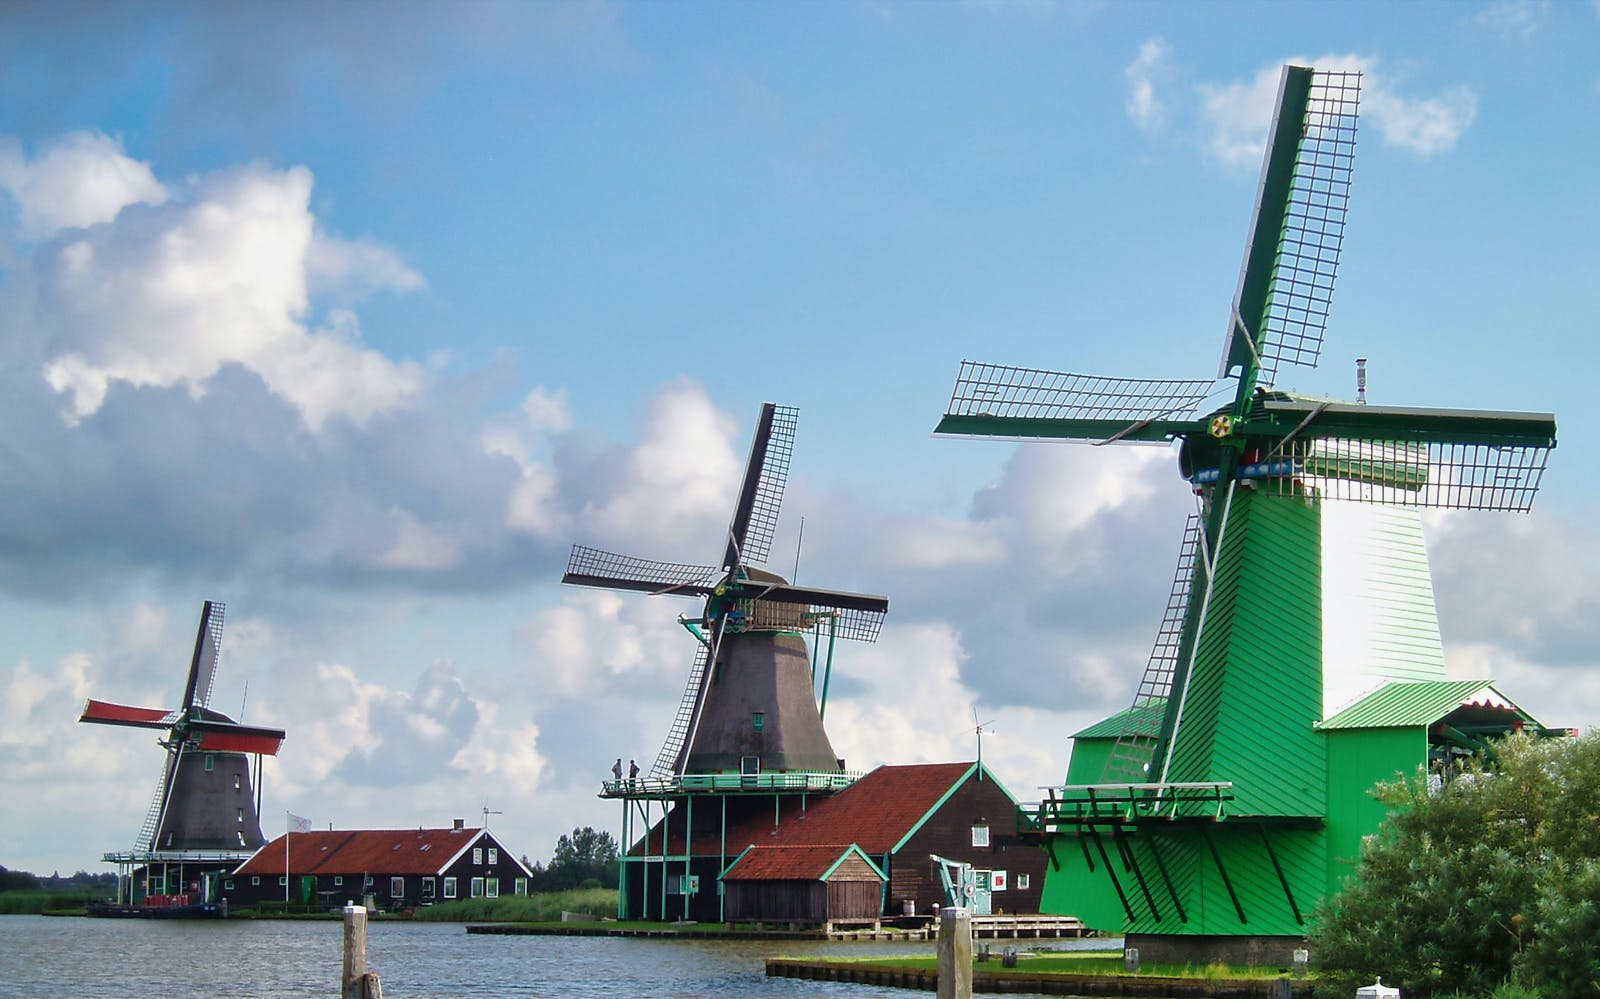 gps volendam, marken and the windmill village of zaanse schans tour-3